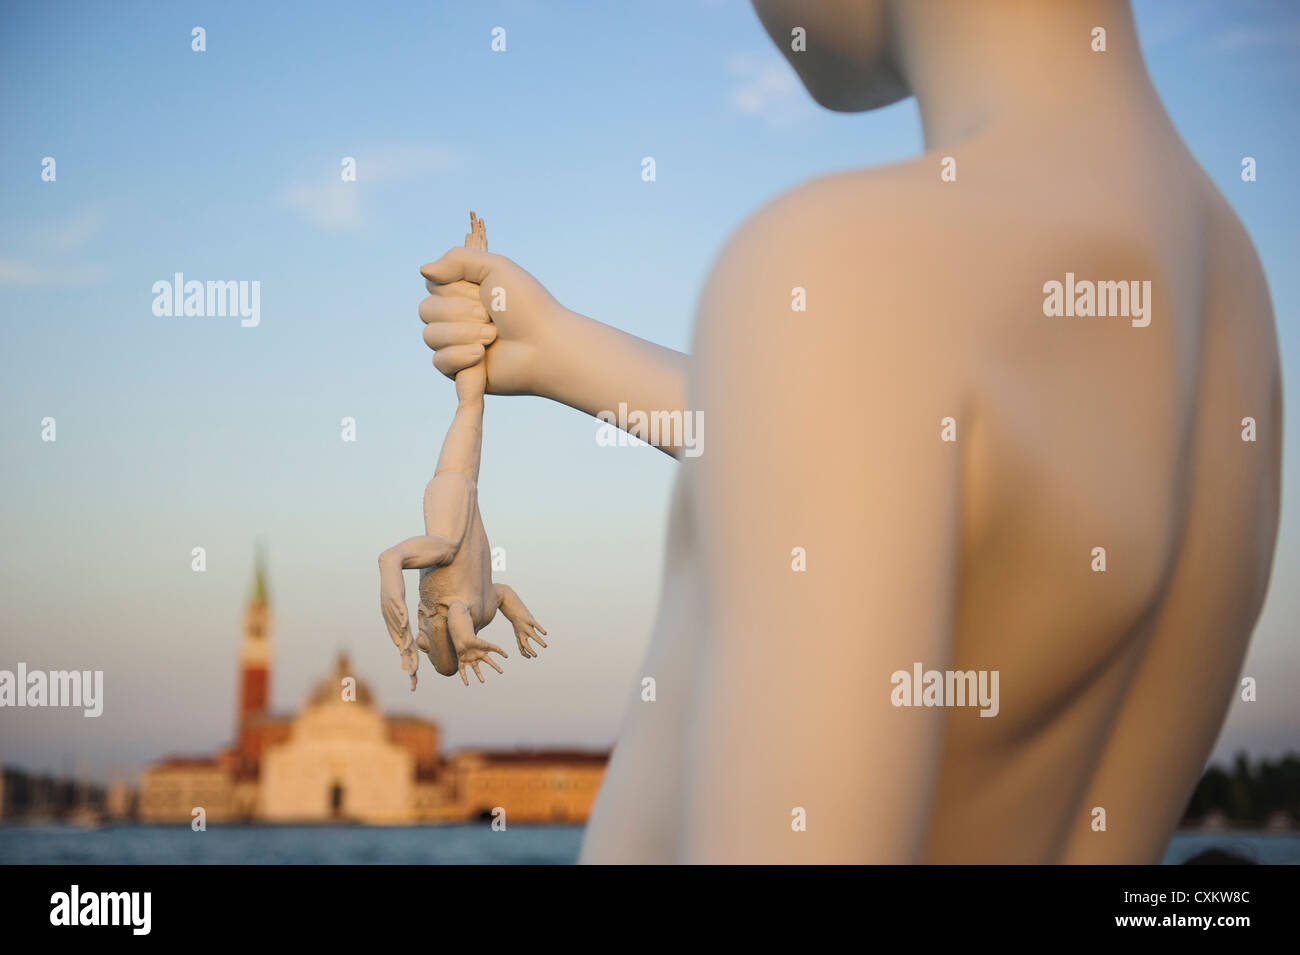 Charles Ray's statue 'boy with a frog', Venice, Italy. - Stock Image